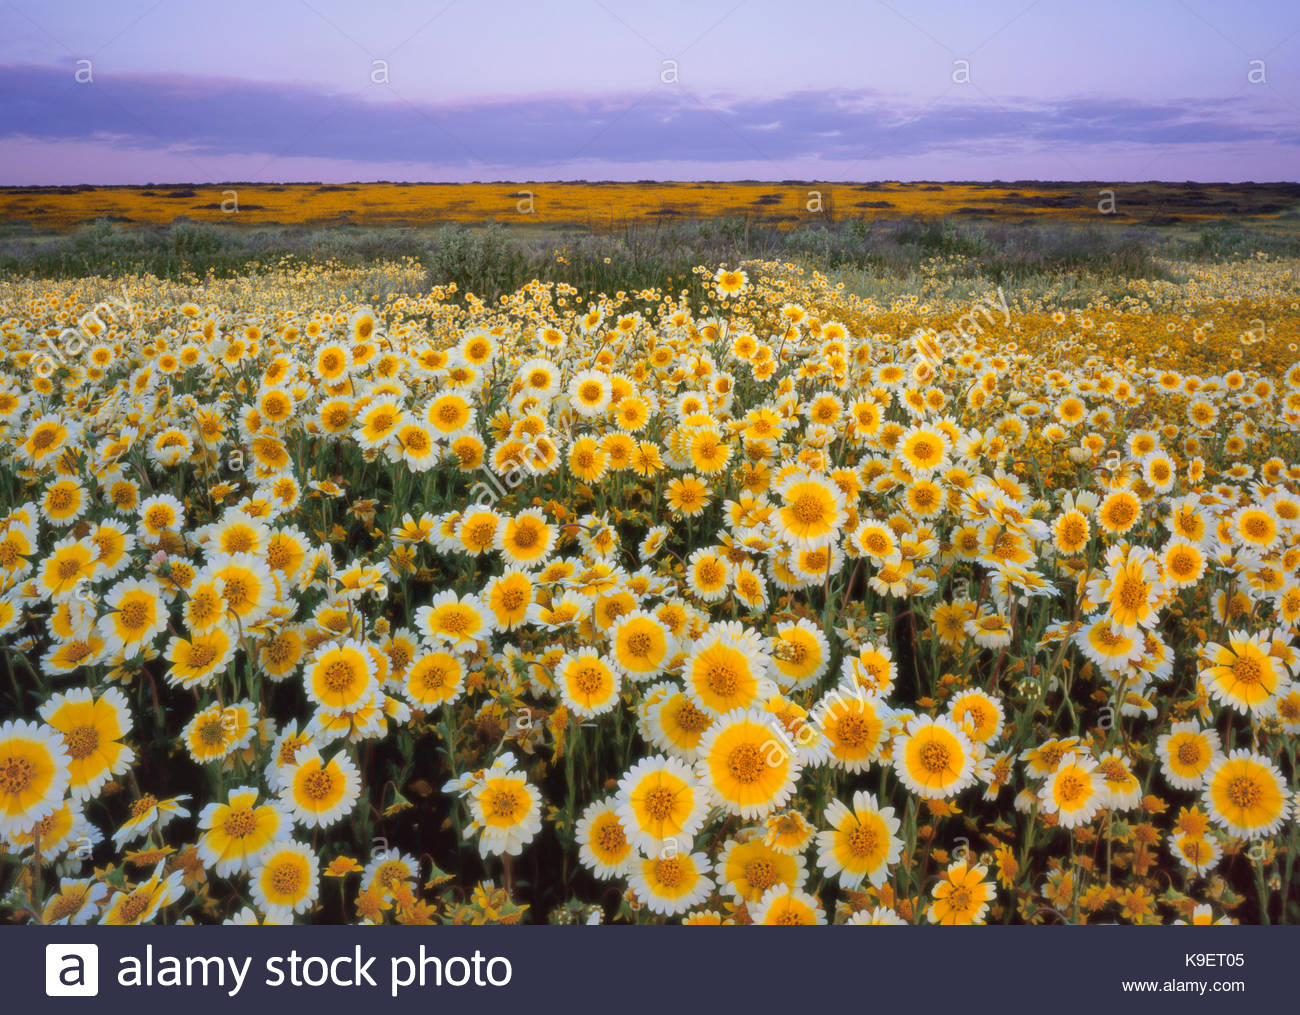 Tidy-tips at Sunrise, Carrizo Plain National Monument, California - Stock Image